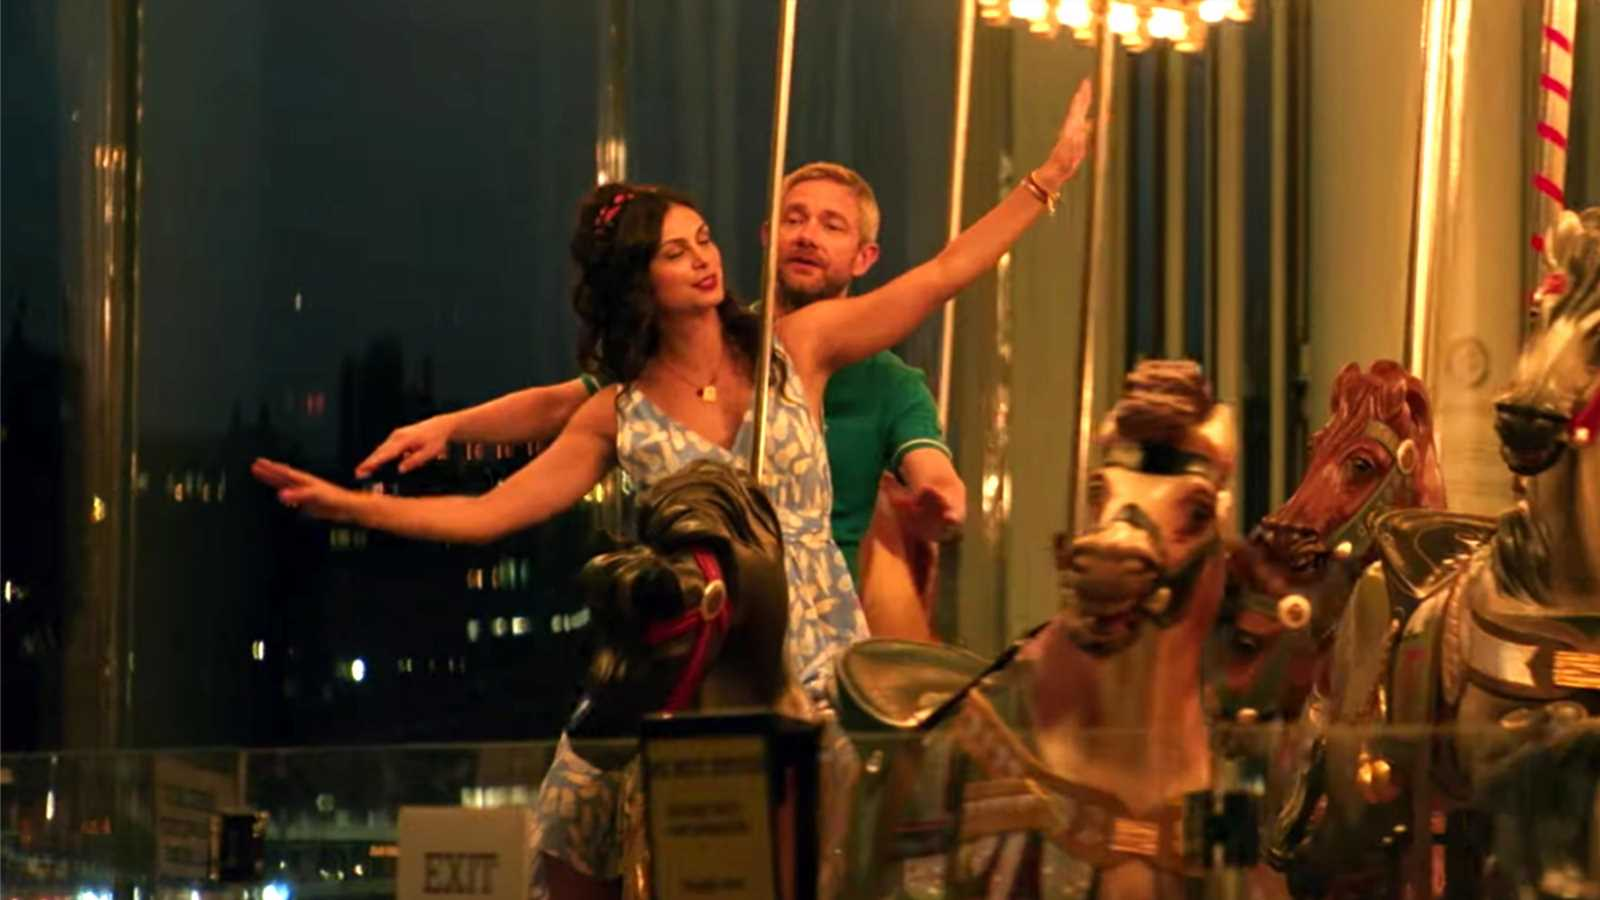 Martin Freeman, Morena Baccarin lead Ode to Joy trailer